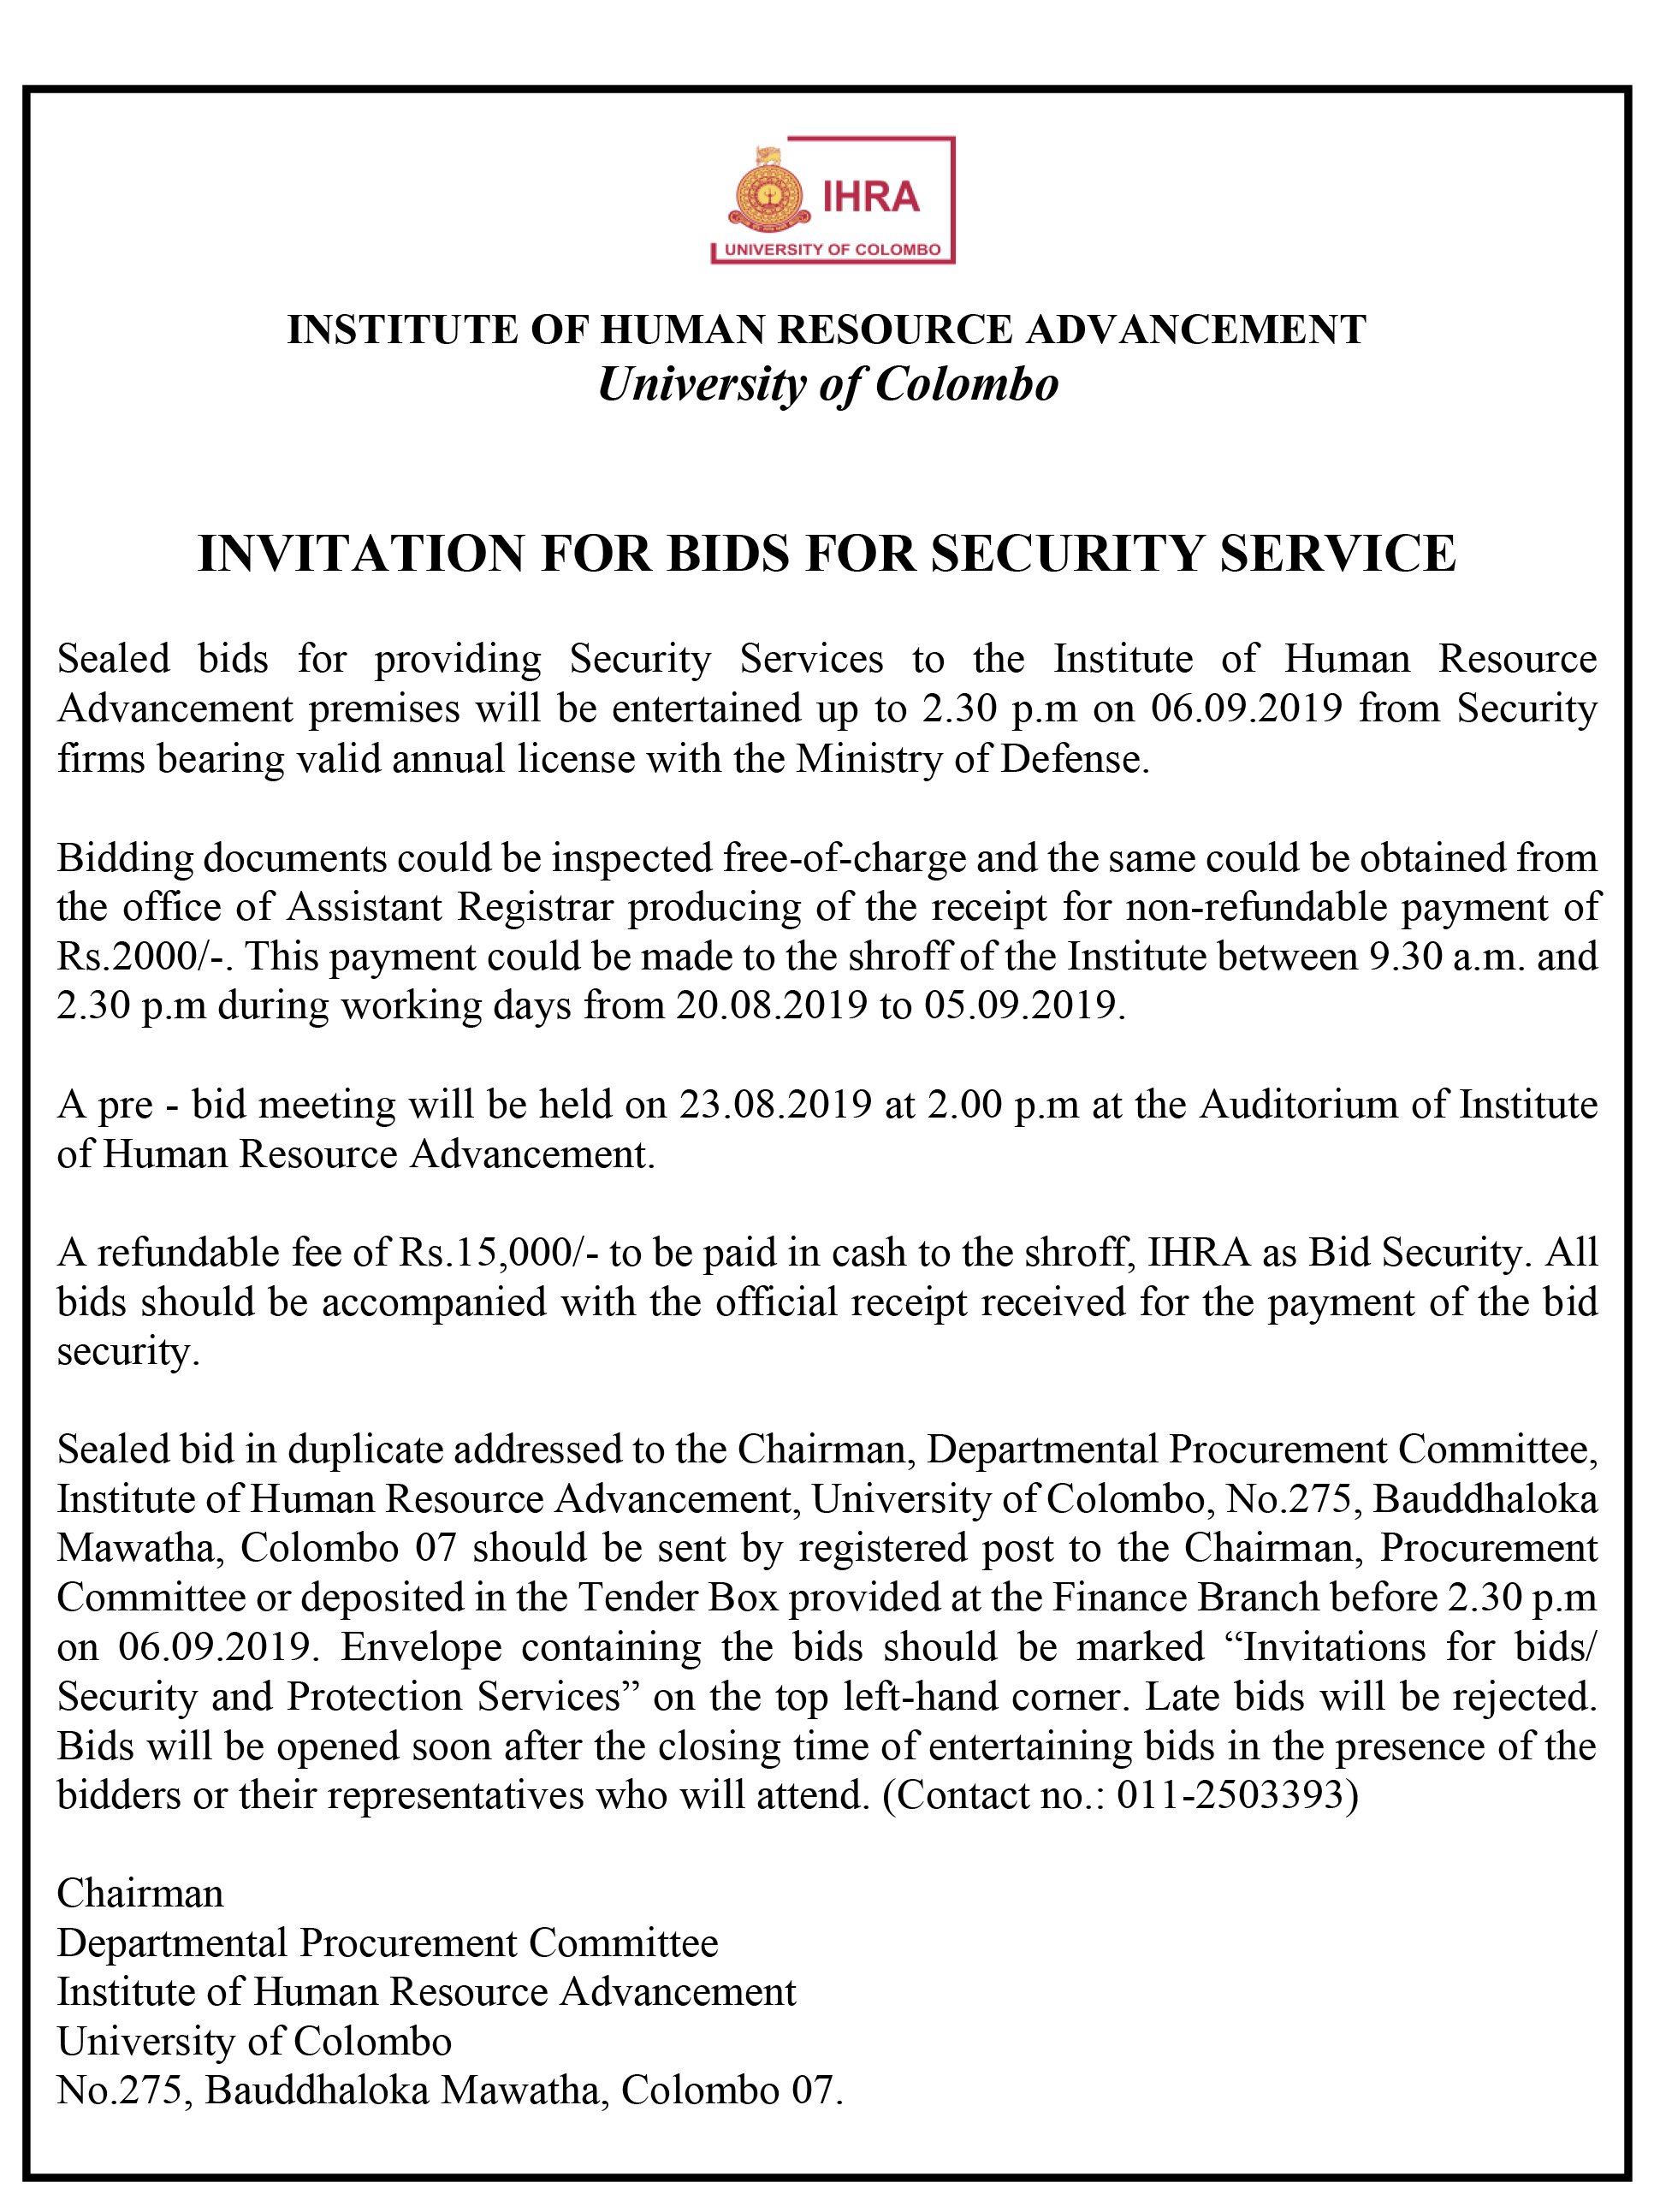 INVITATION FOR BIDS FOR SECURITY SERVICE